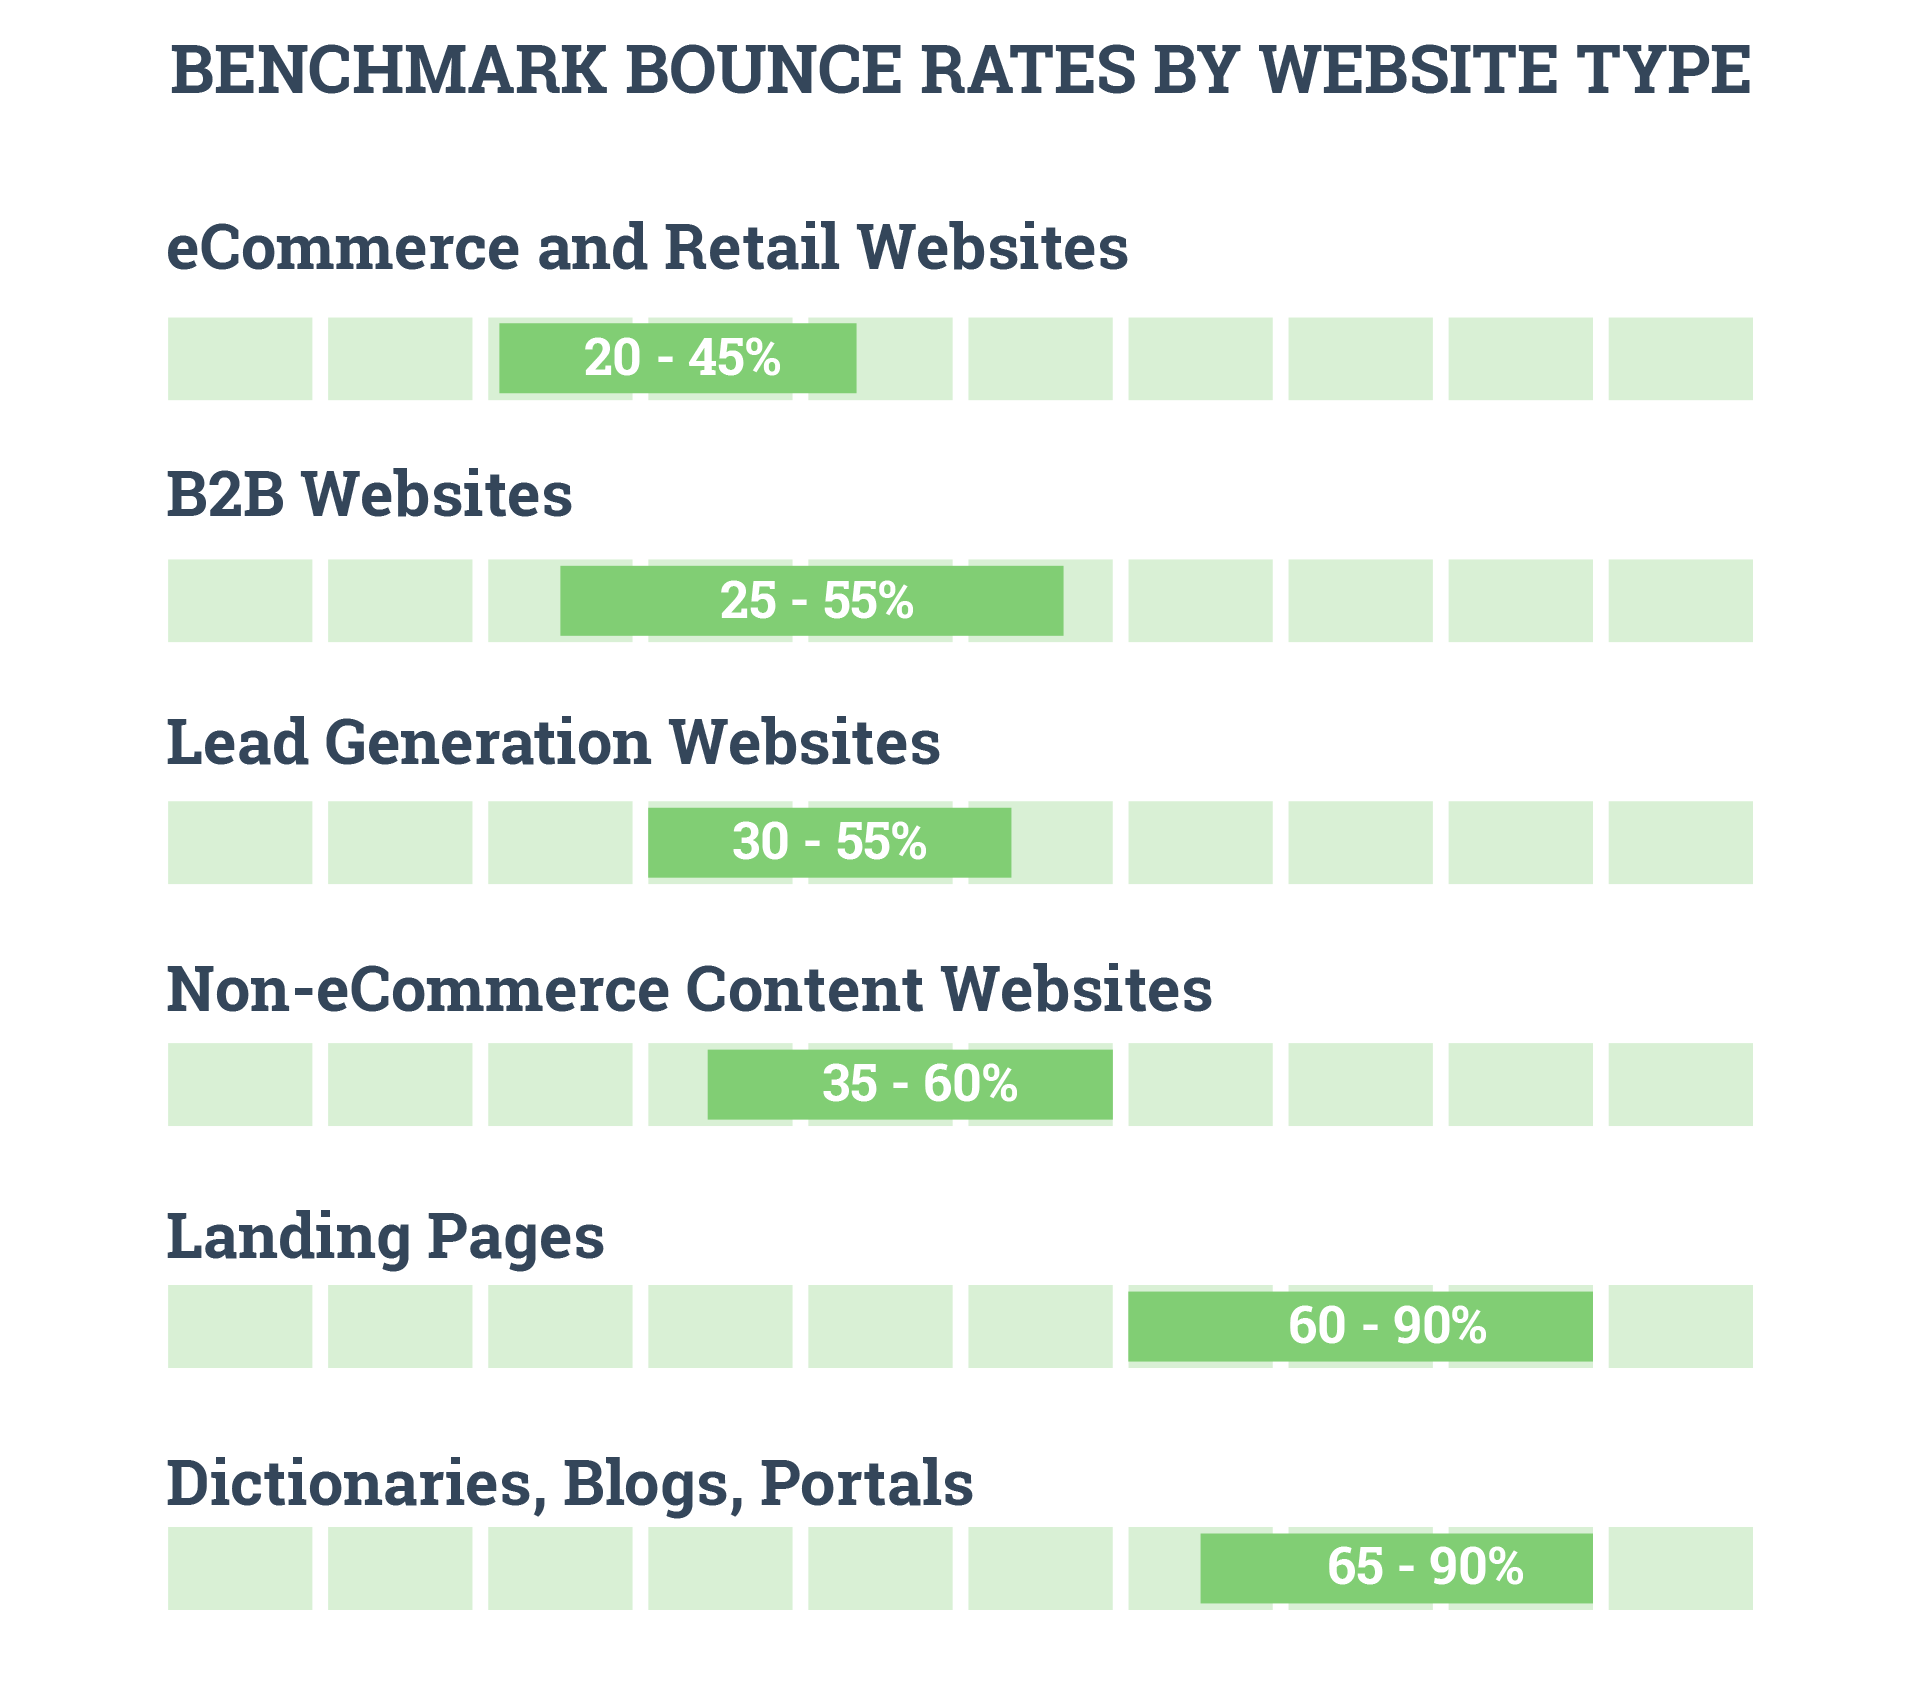 Benchmark bounce rates by website type. Source: CXL